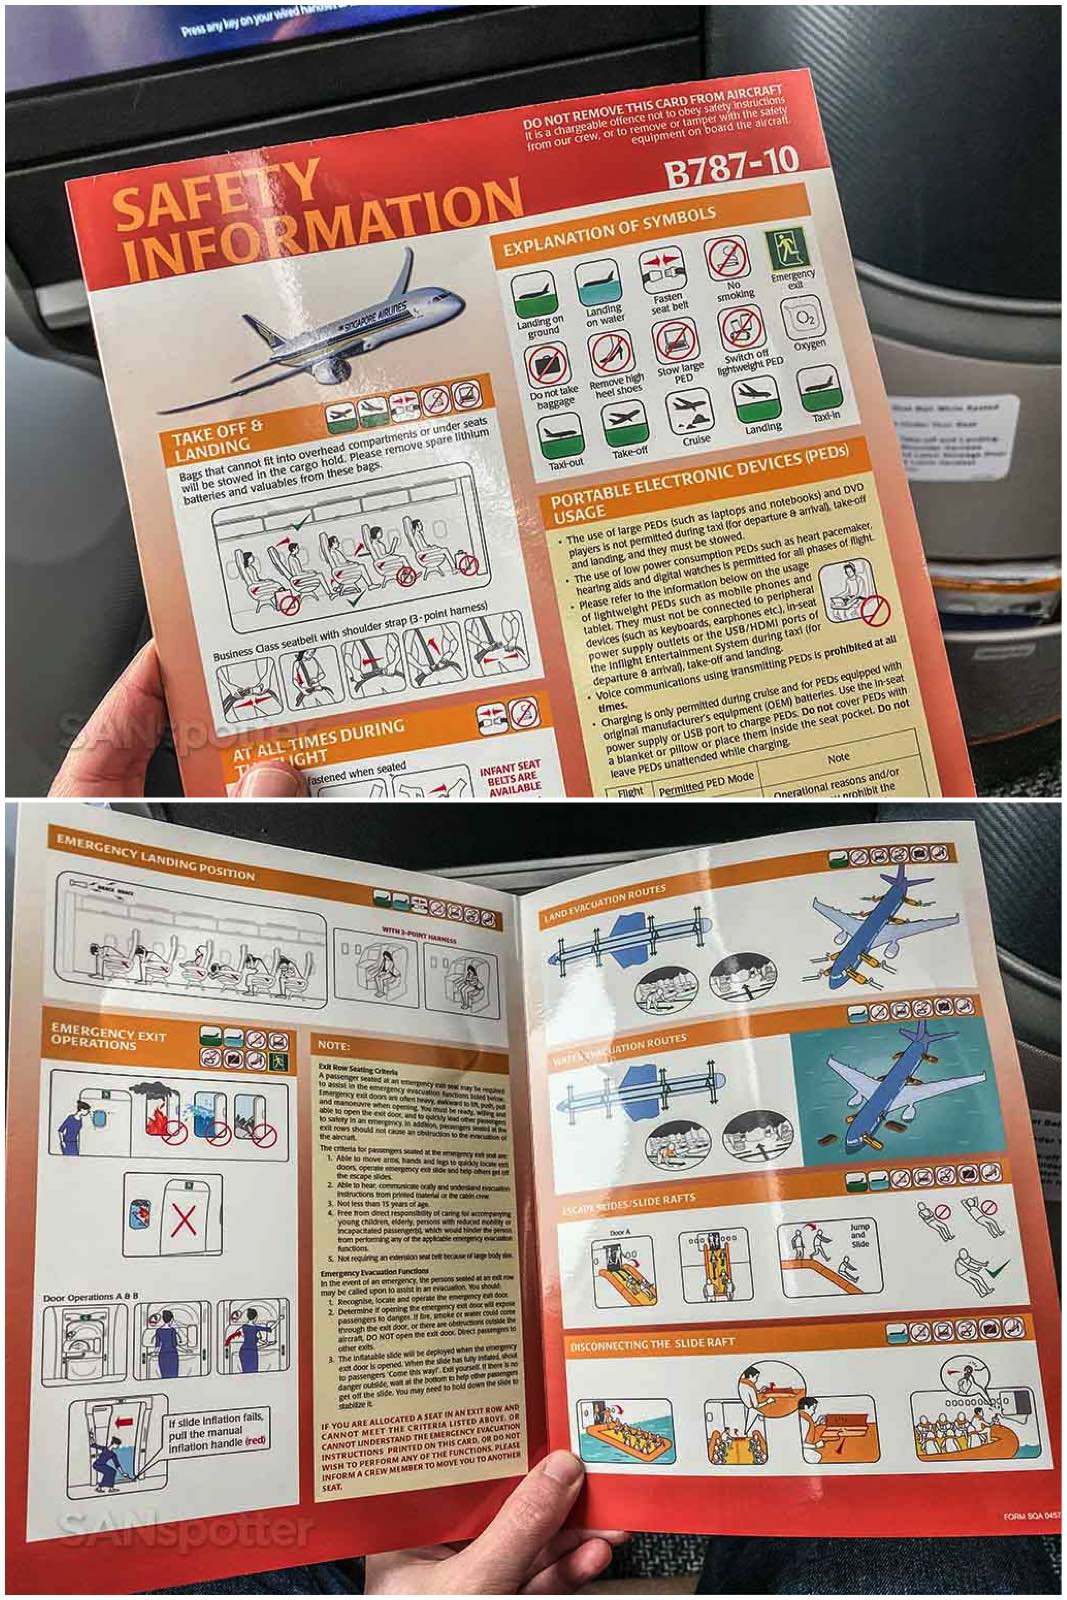 Singapore Airlines 787-10 safety card